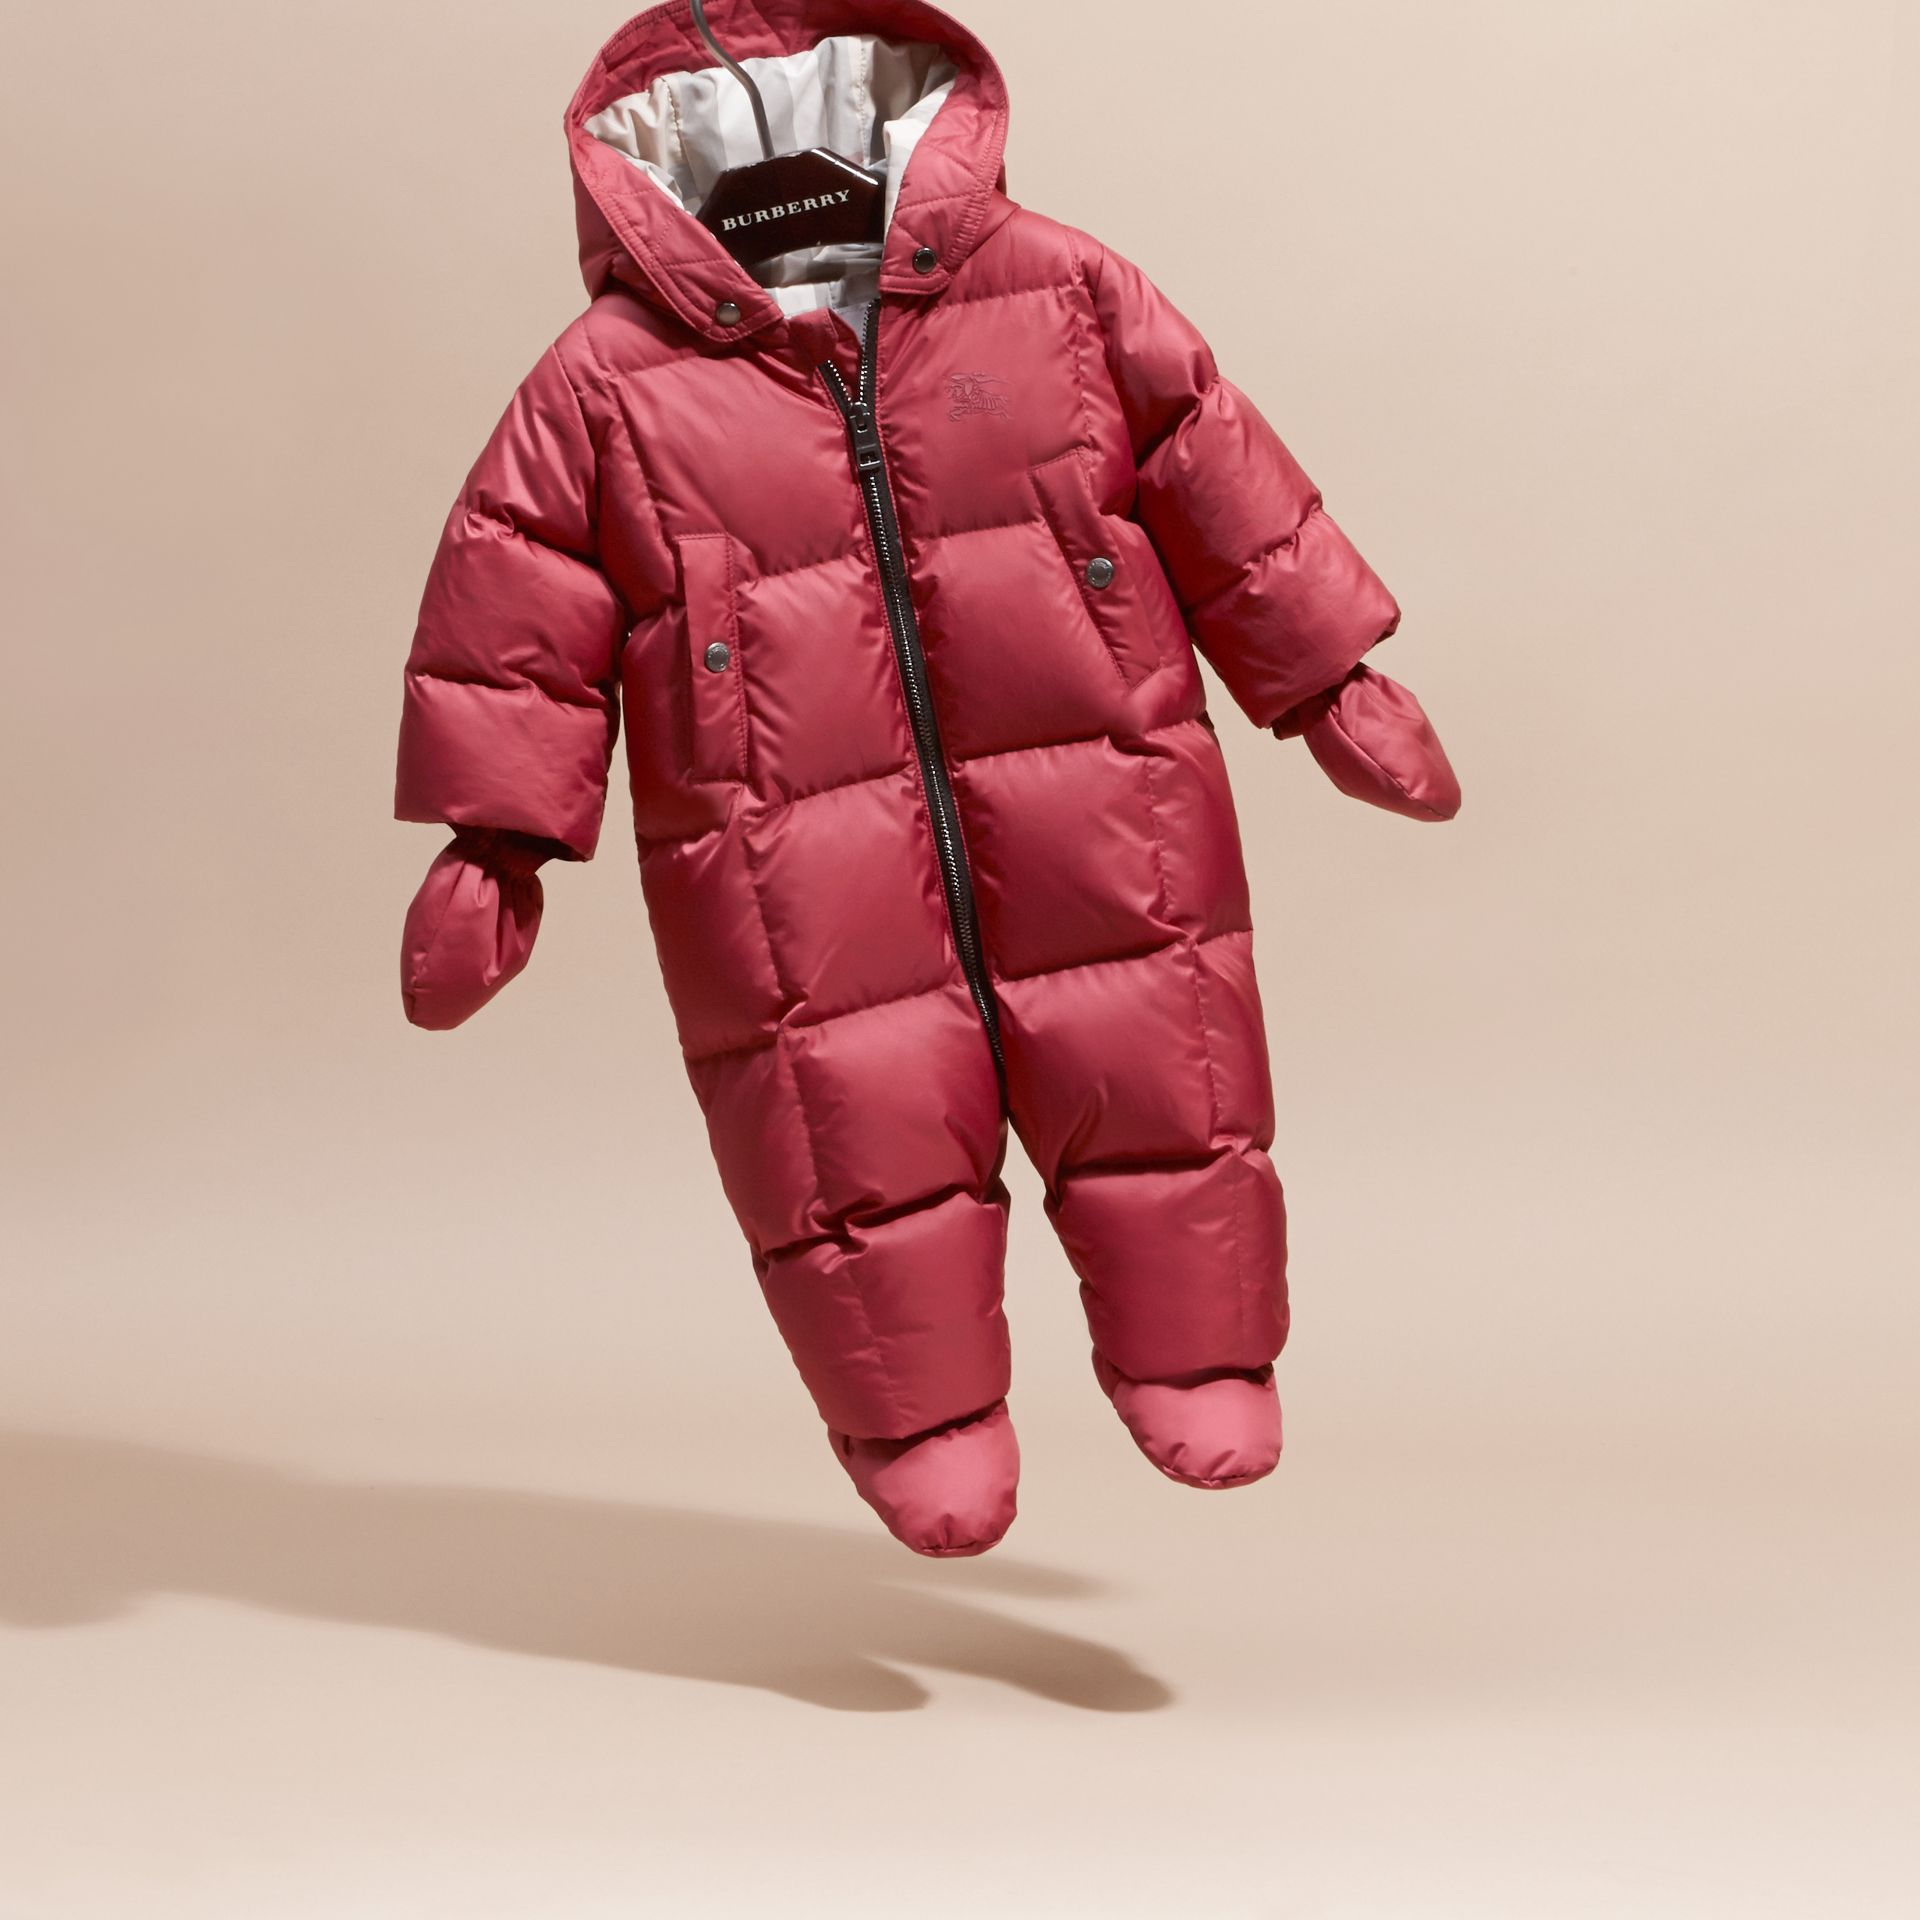 Down-filled Puffer Suit in Peony Rose | Burberry - gallery image 3